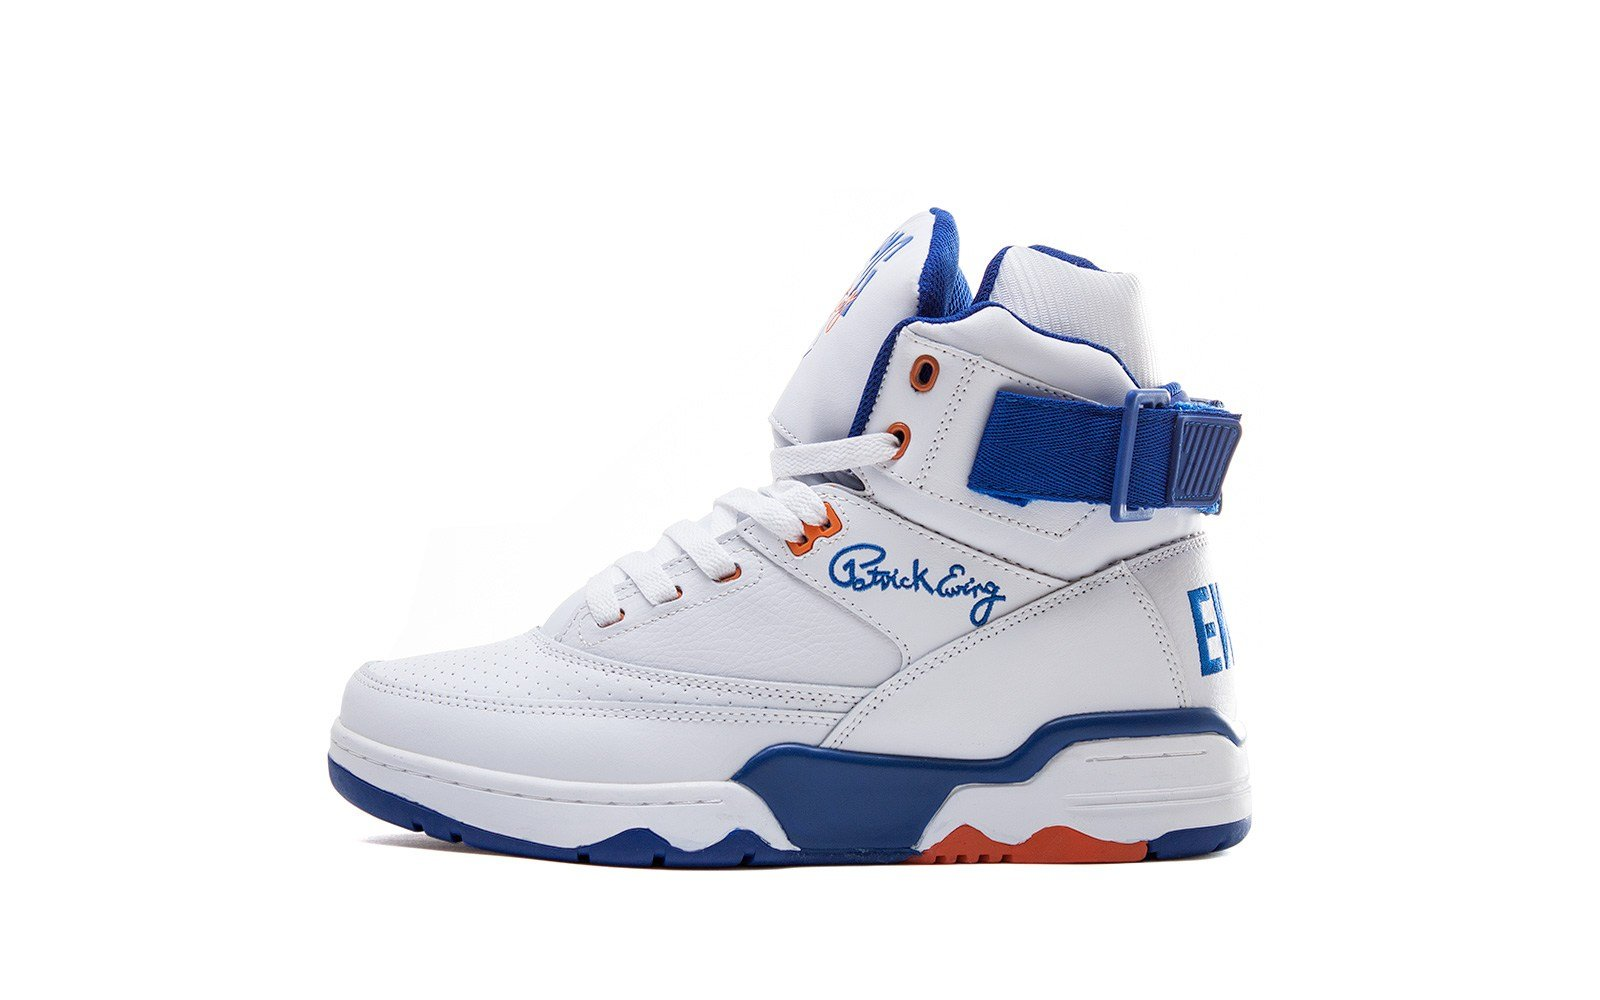 Ewing 33 Hi 'White Leather' at Sneakersnstuff